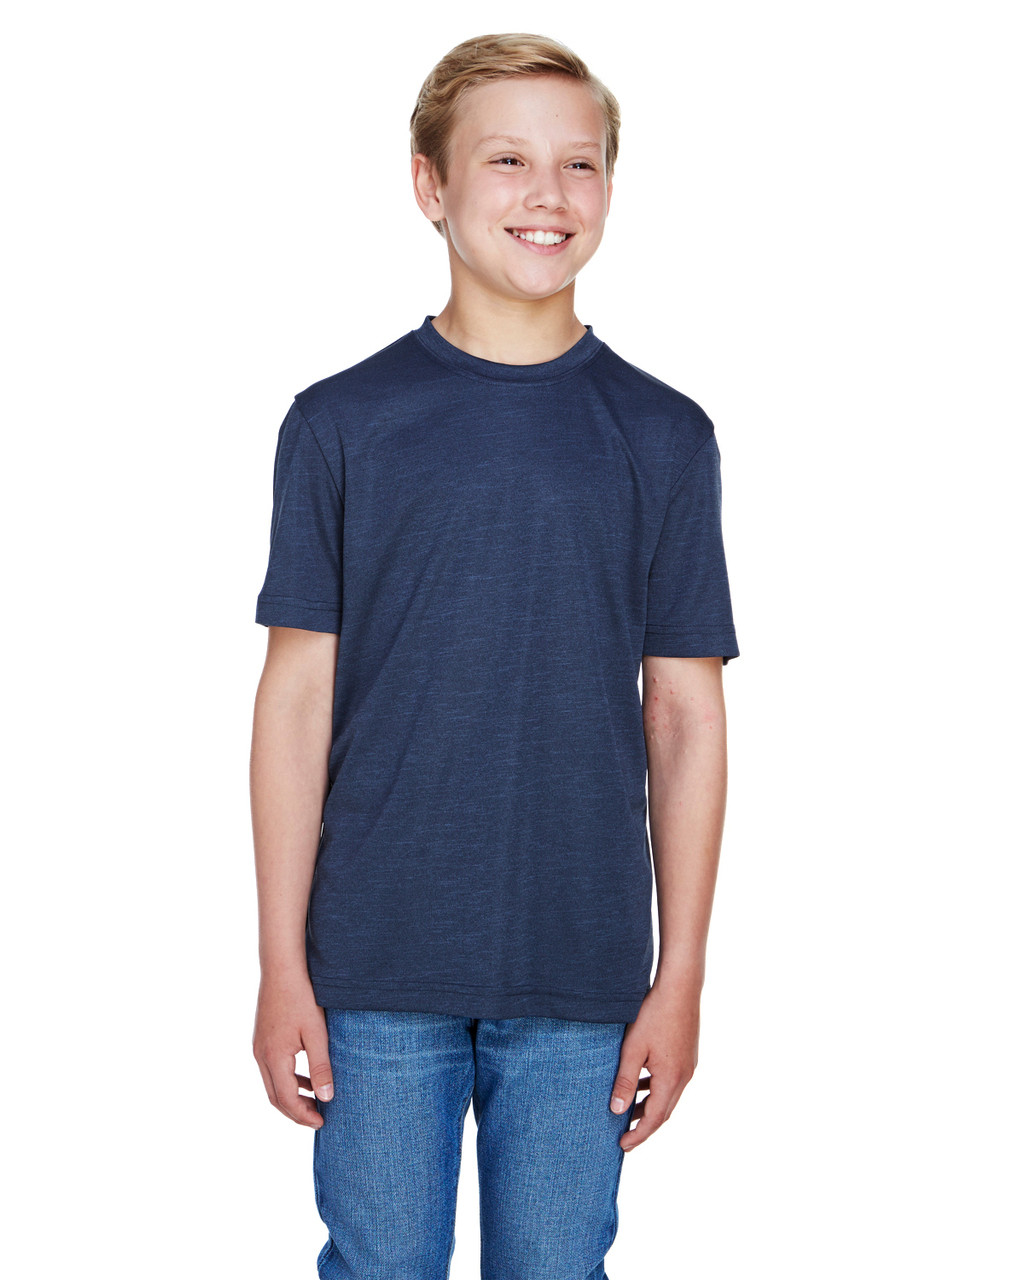 Sport Dark Navy Heather - TT11HY Team 365 Youth Sonic Heather Performance T-Shirt | BlankClothing.ca